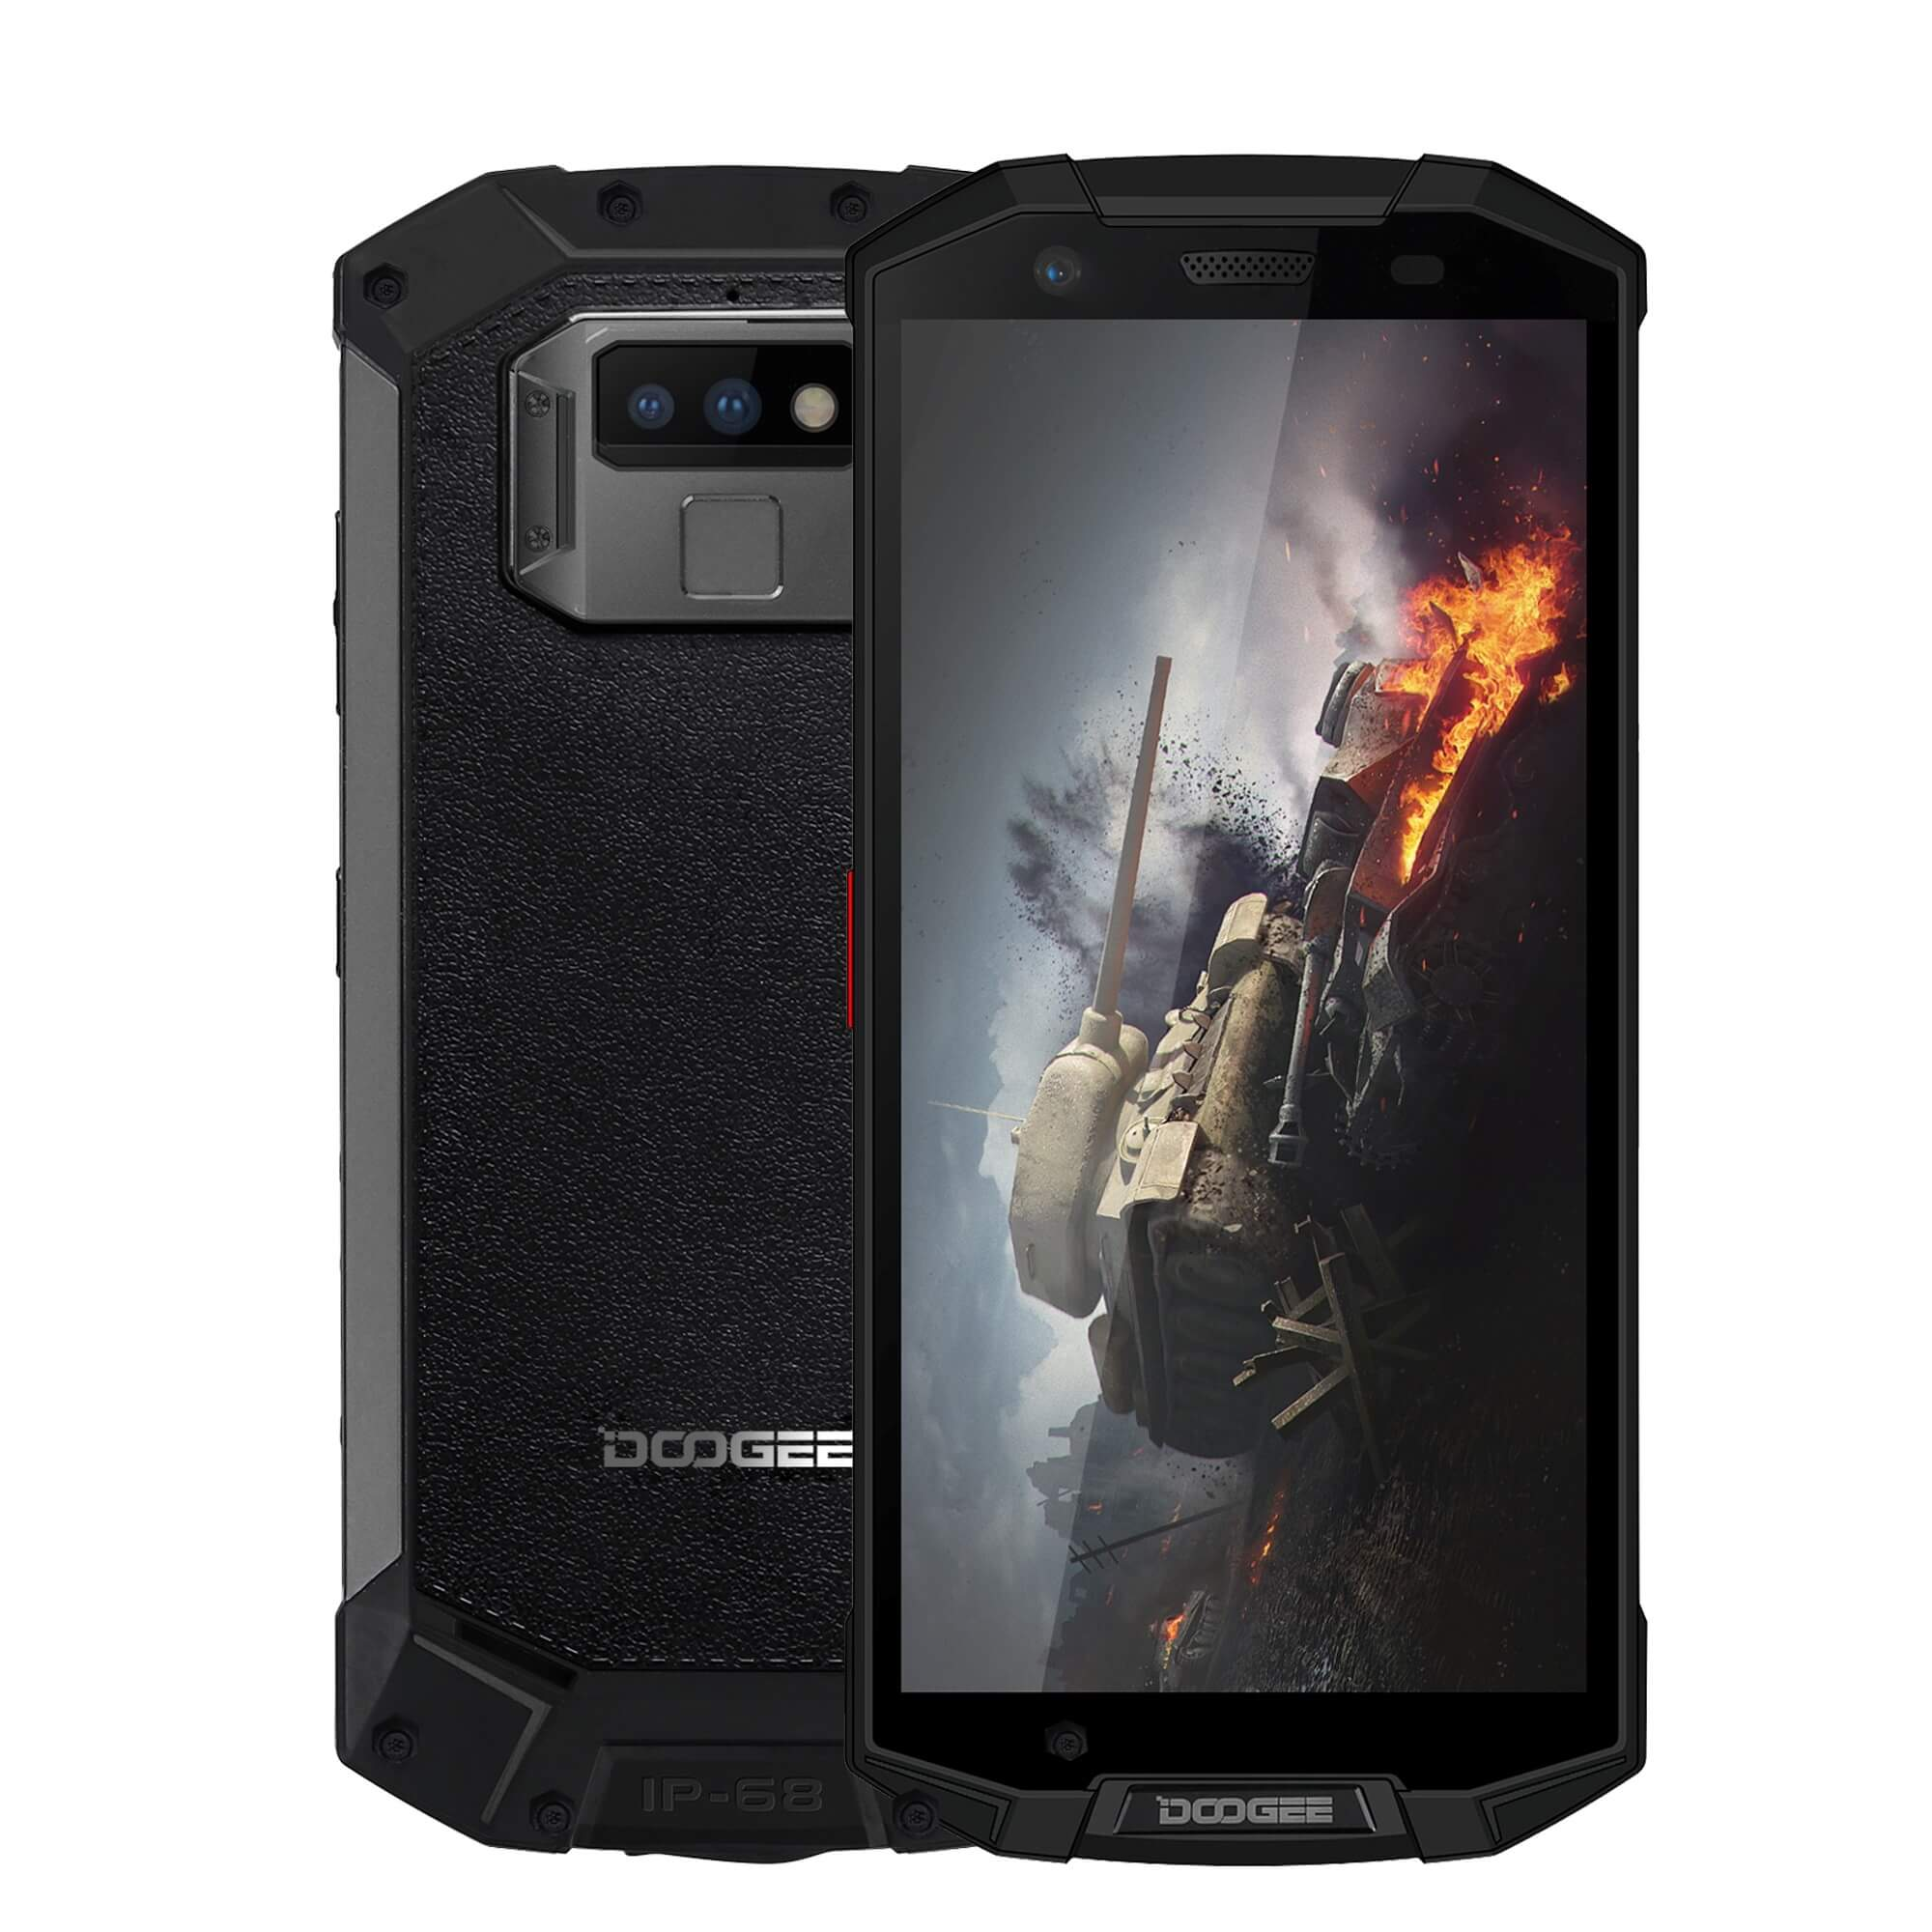 Enhanced Smartphone For Players